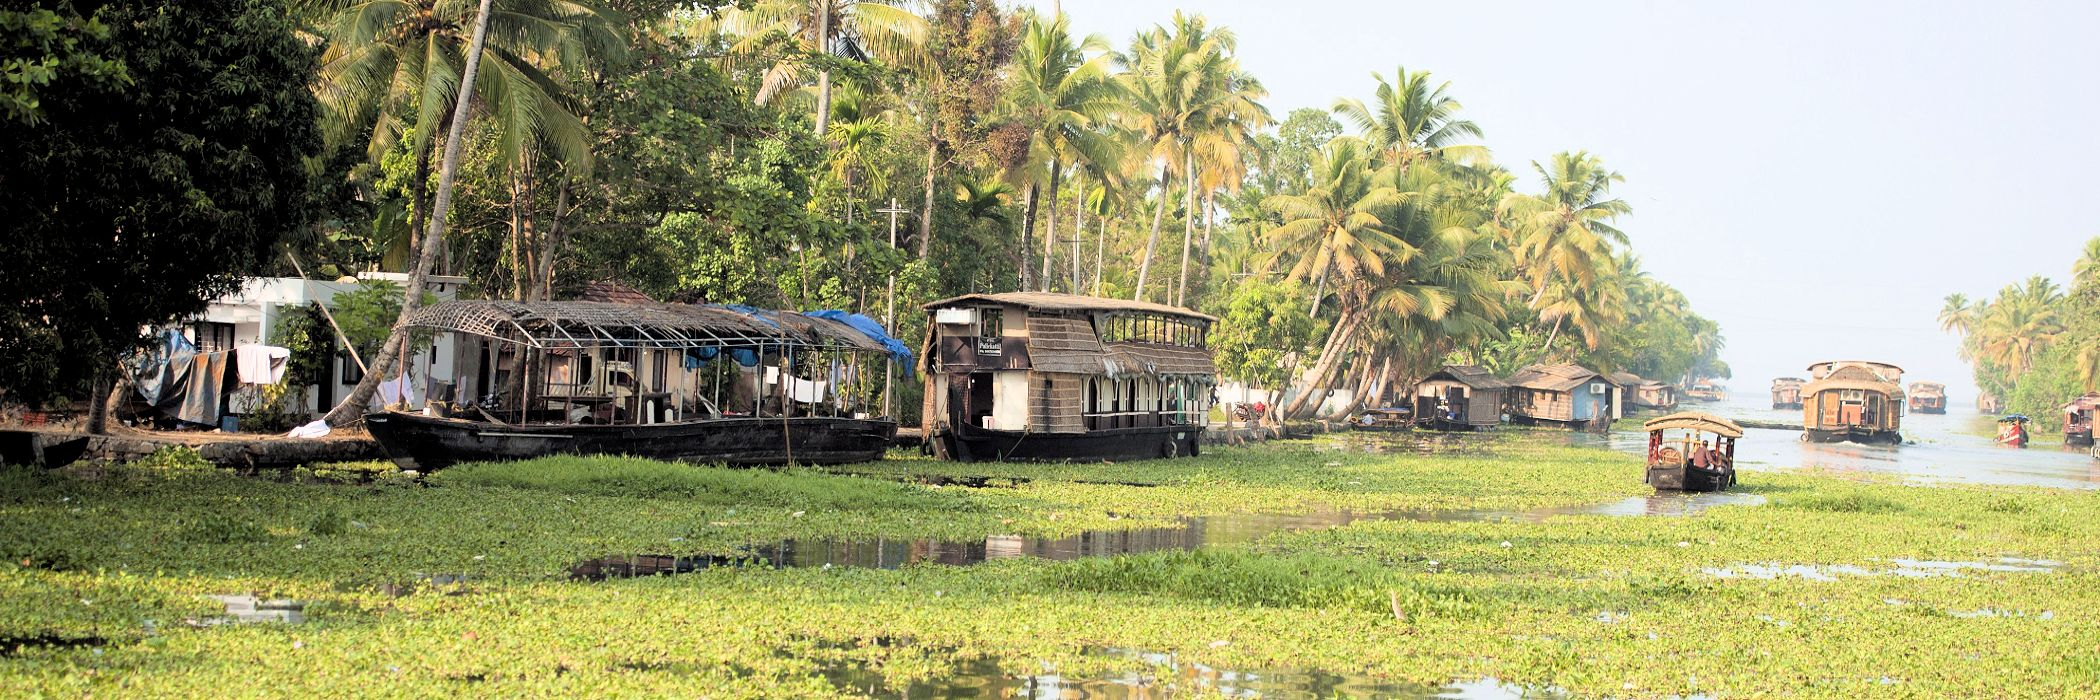 Allepey, Kerala, India: Houseboats on river